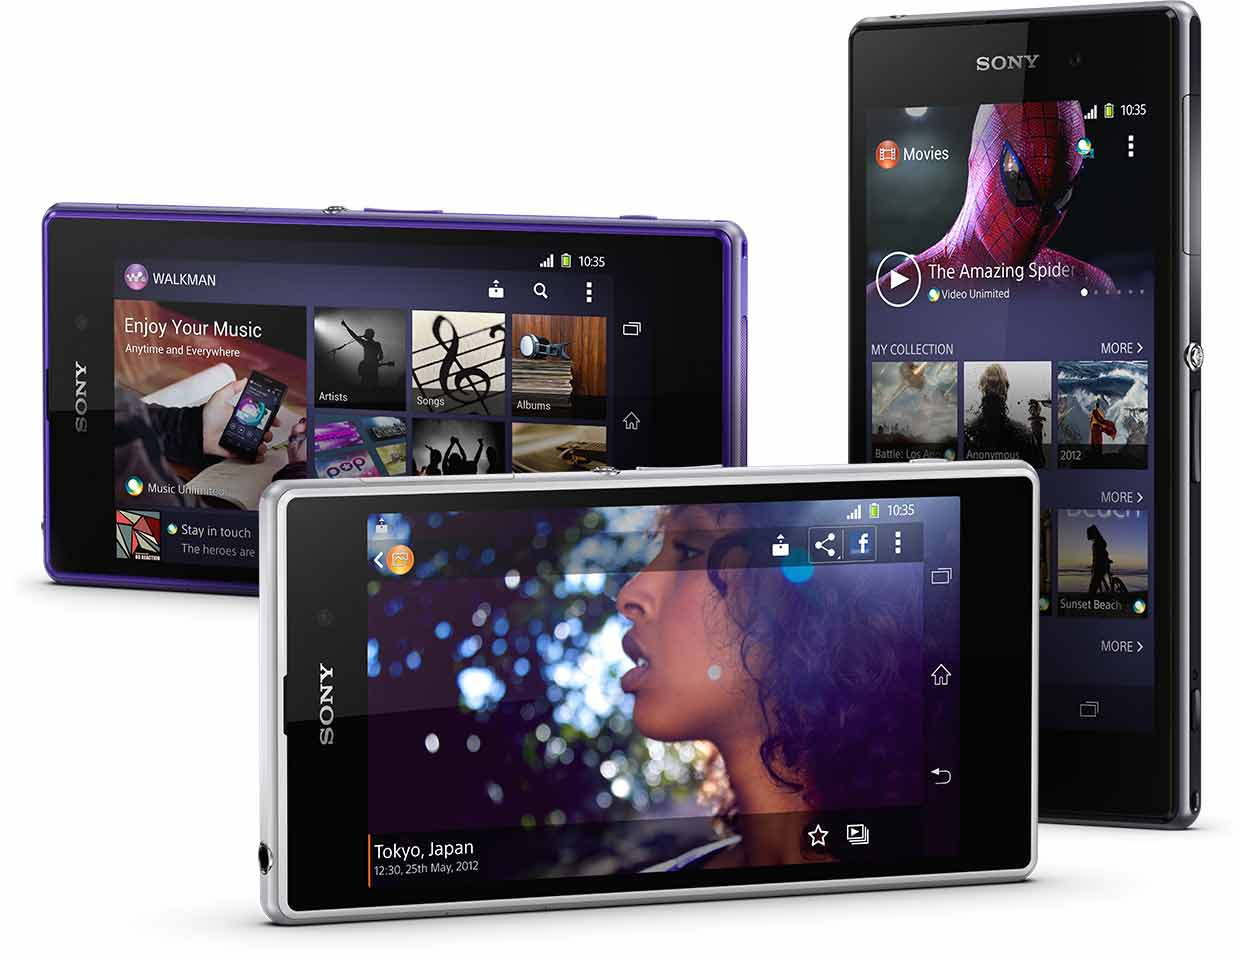 You'll find Sony's media apps – the WALKMAN, Movies and Album apps - on your Xperia Z1 homescreen.